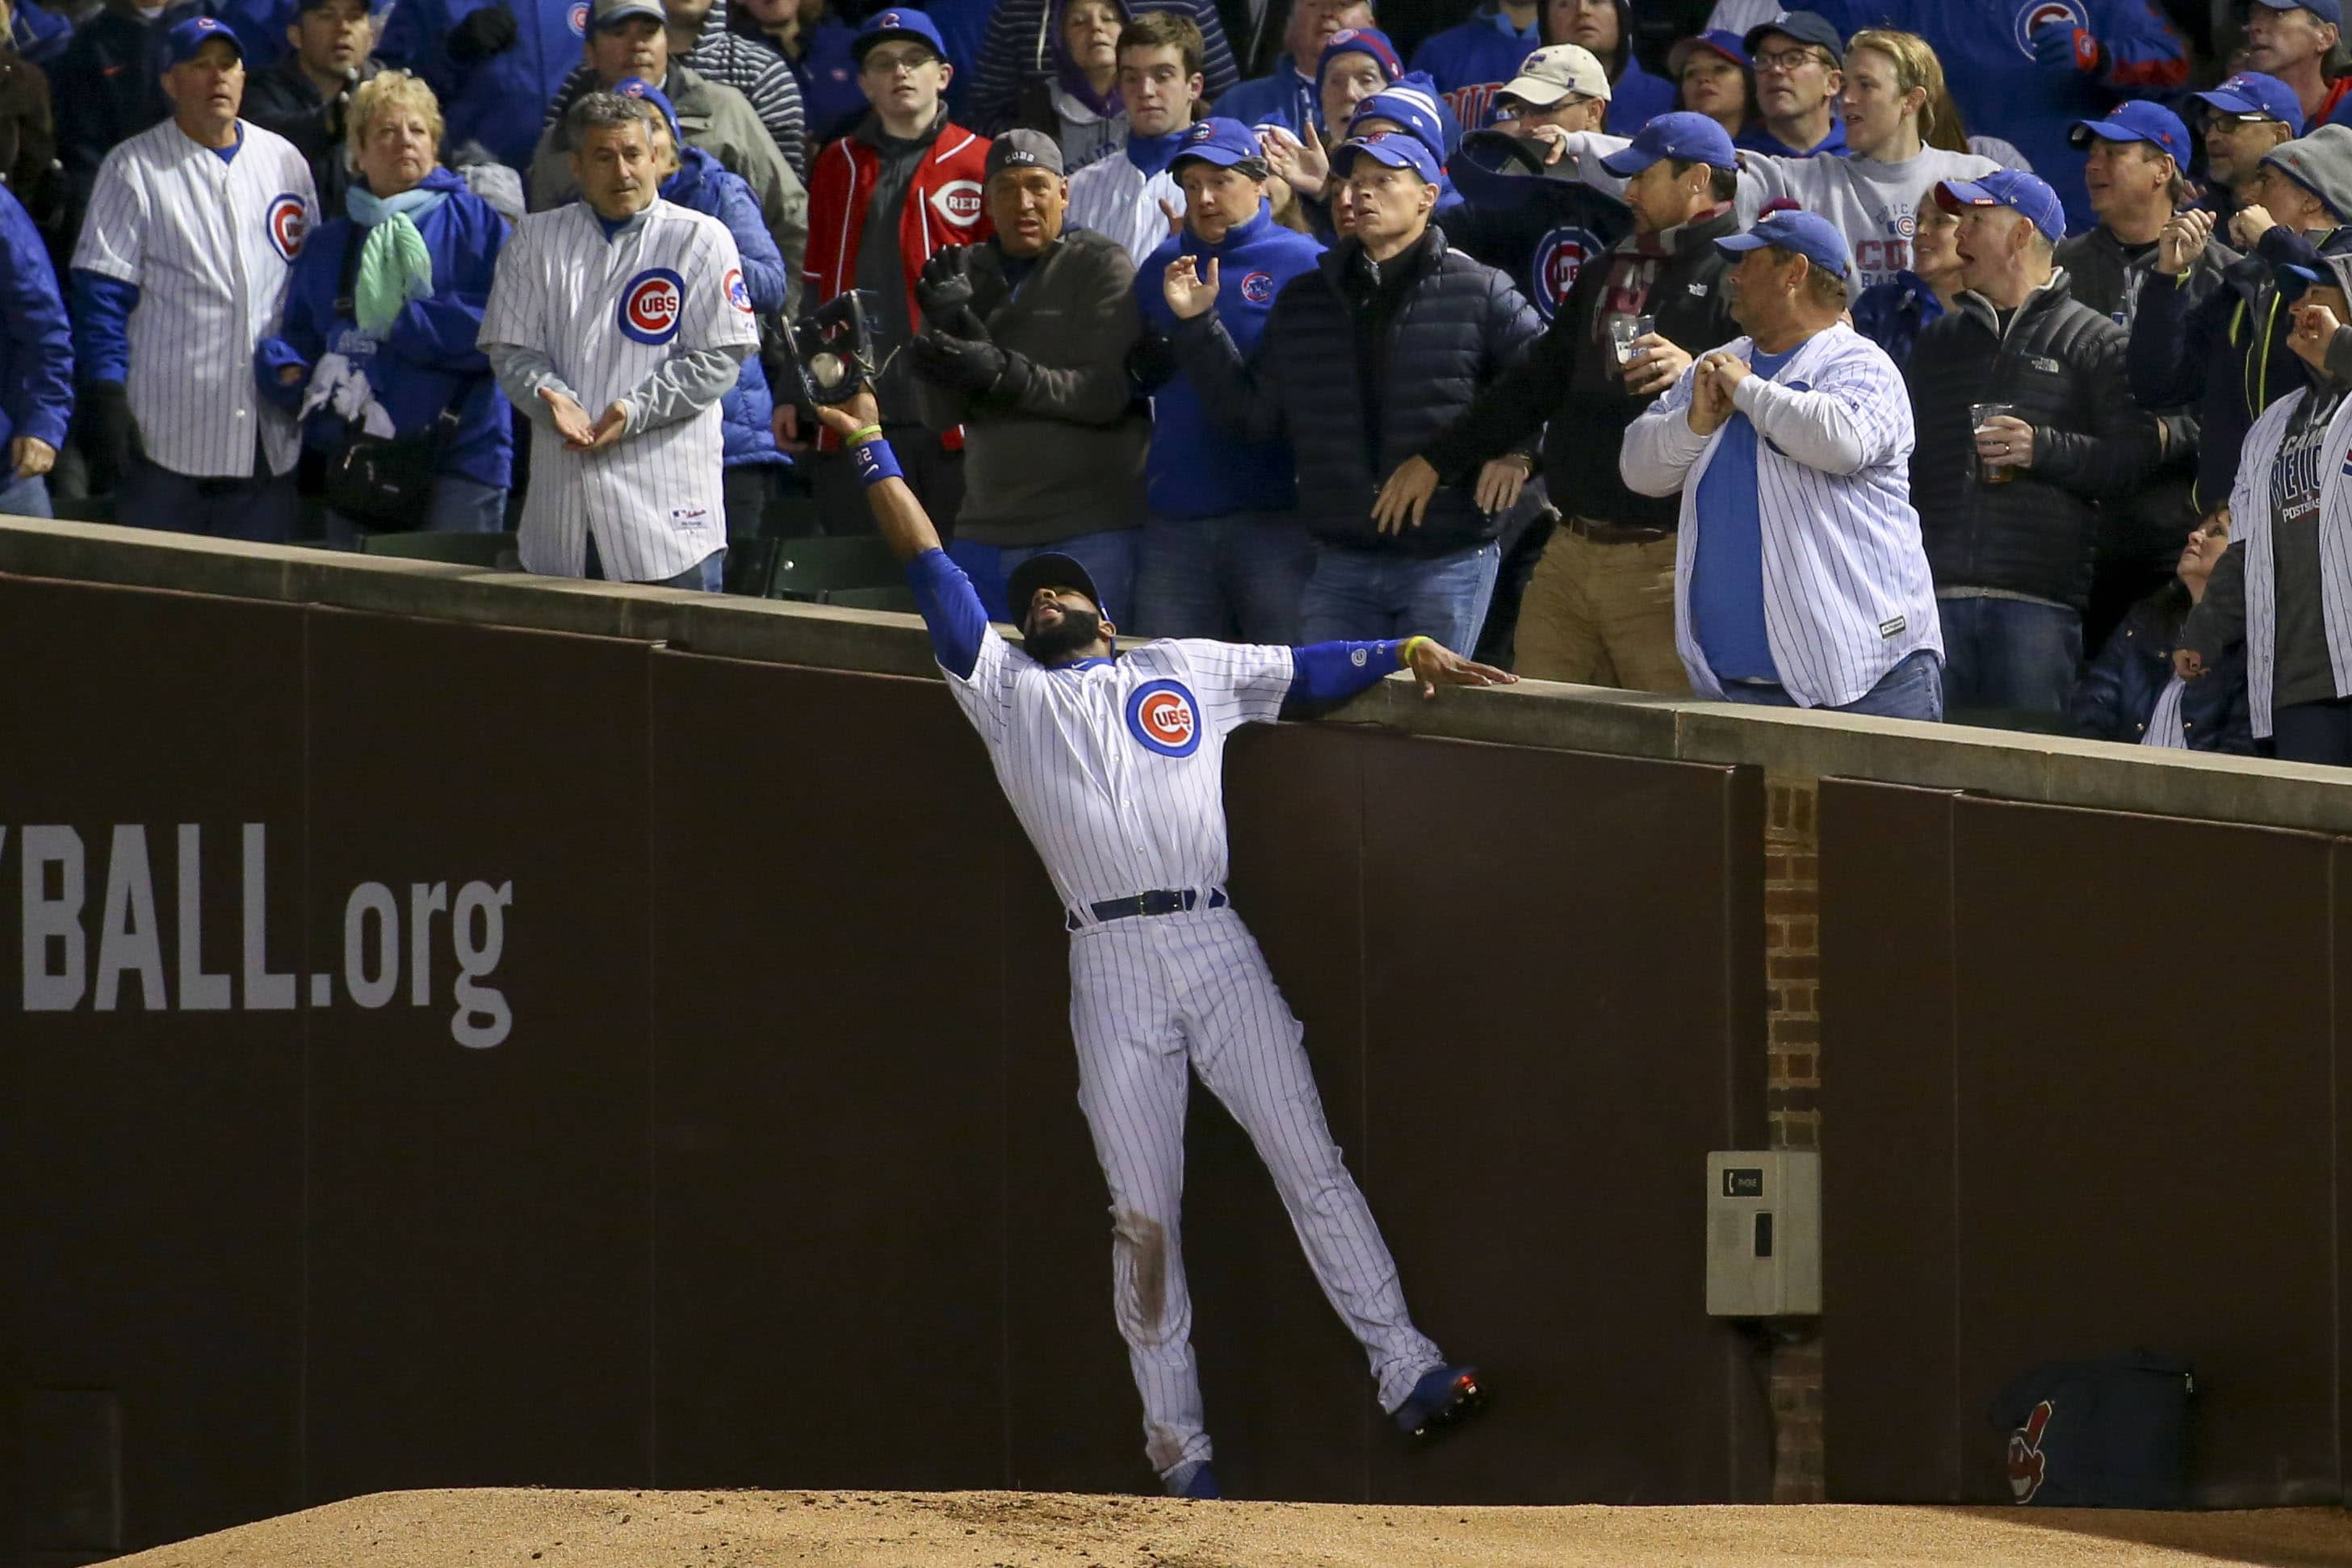 Plays like this one are the reason Jason Heyward is so valuable in a lineup, even when he's not hitting. (Jerry Lai/USA TODAY Sports)